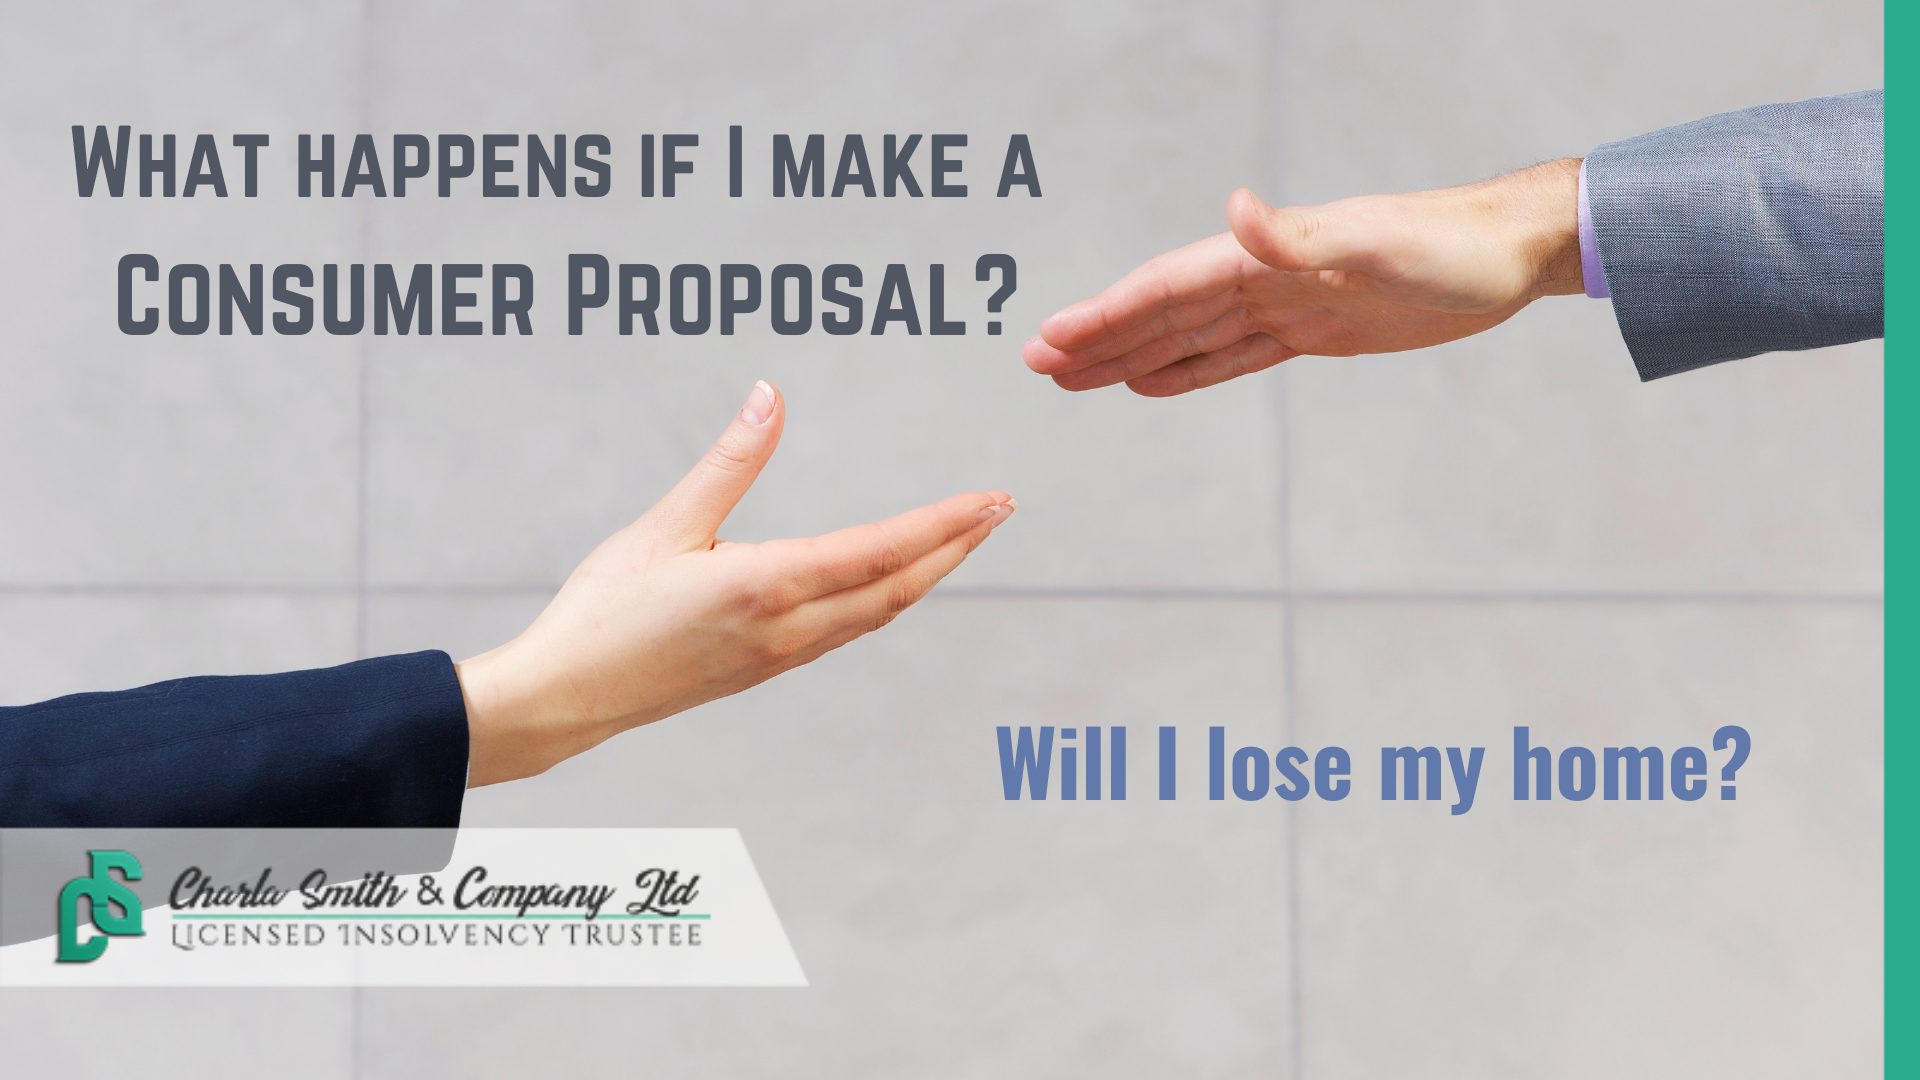 What happens when I make a Consumer Proposal? Will I lose my home?